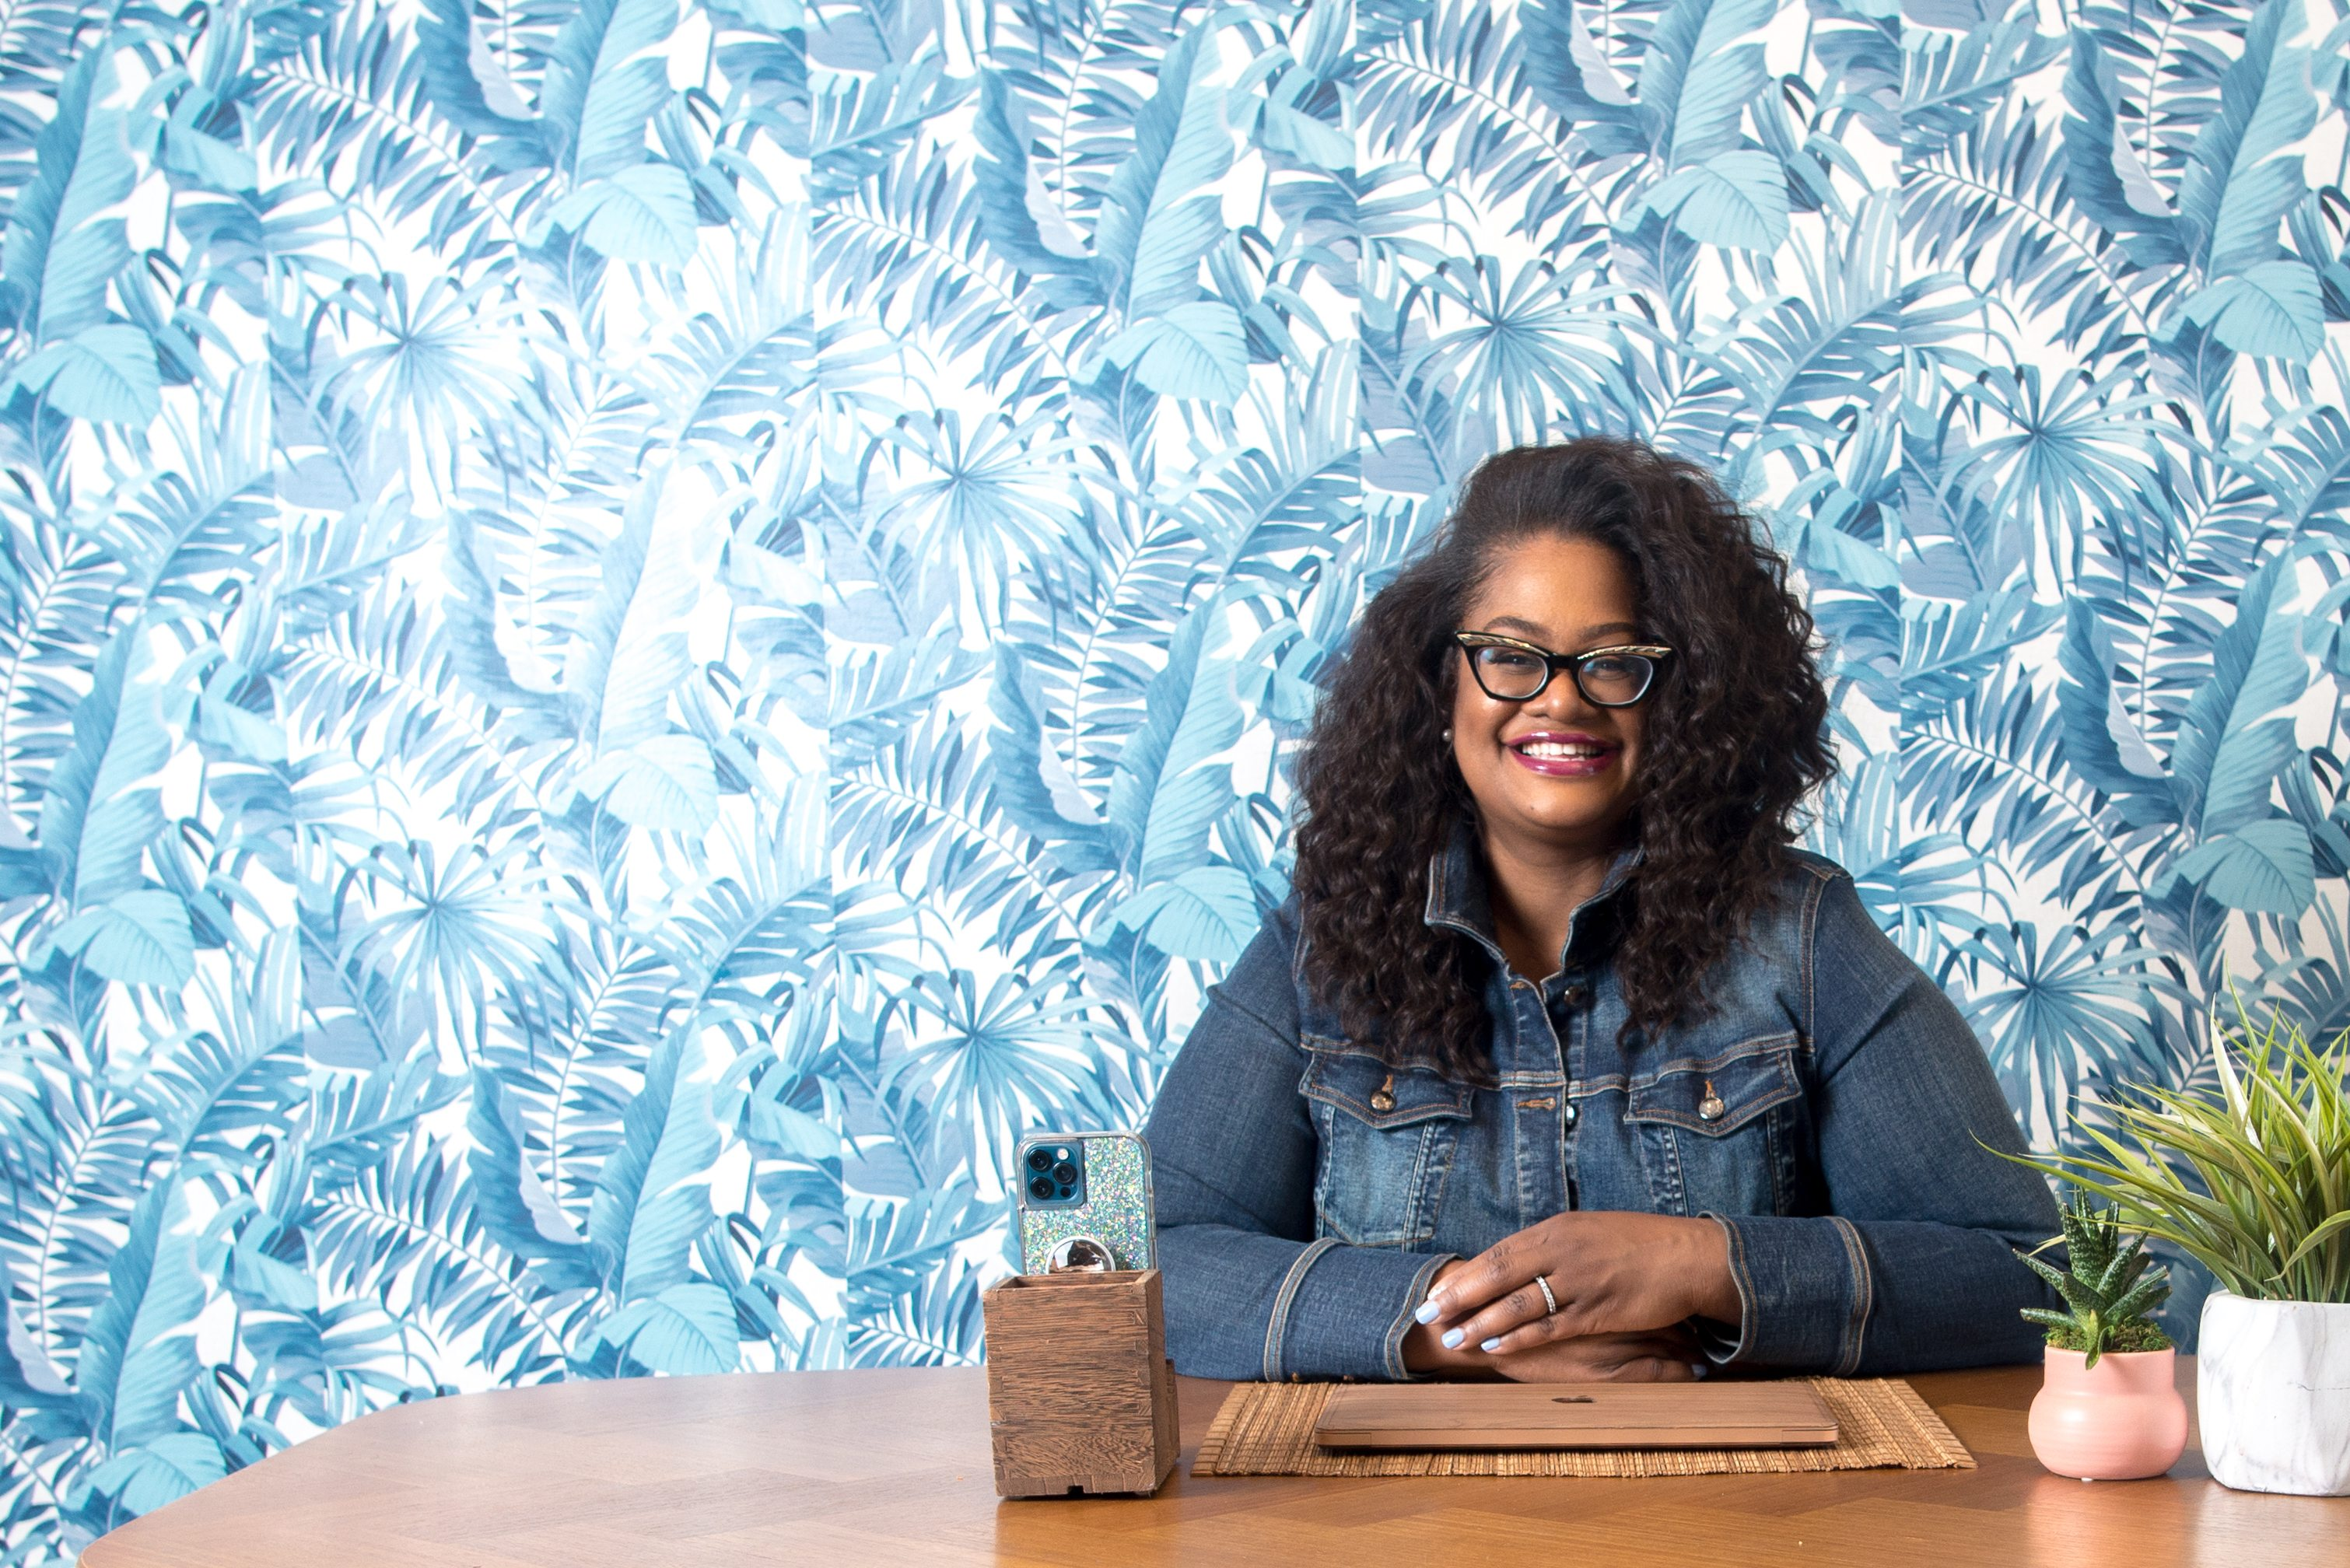 Kathryn Finney is the founder of Atlanta-based Genius Guild